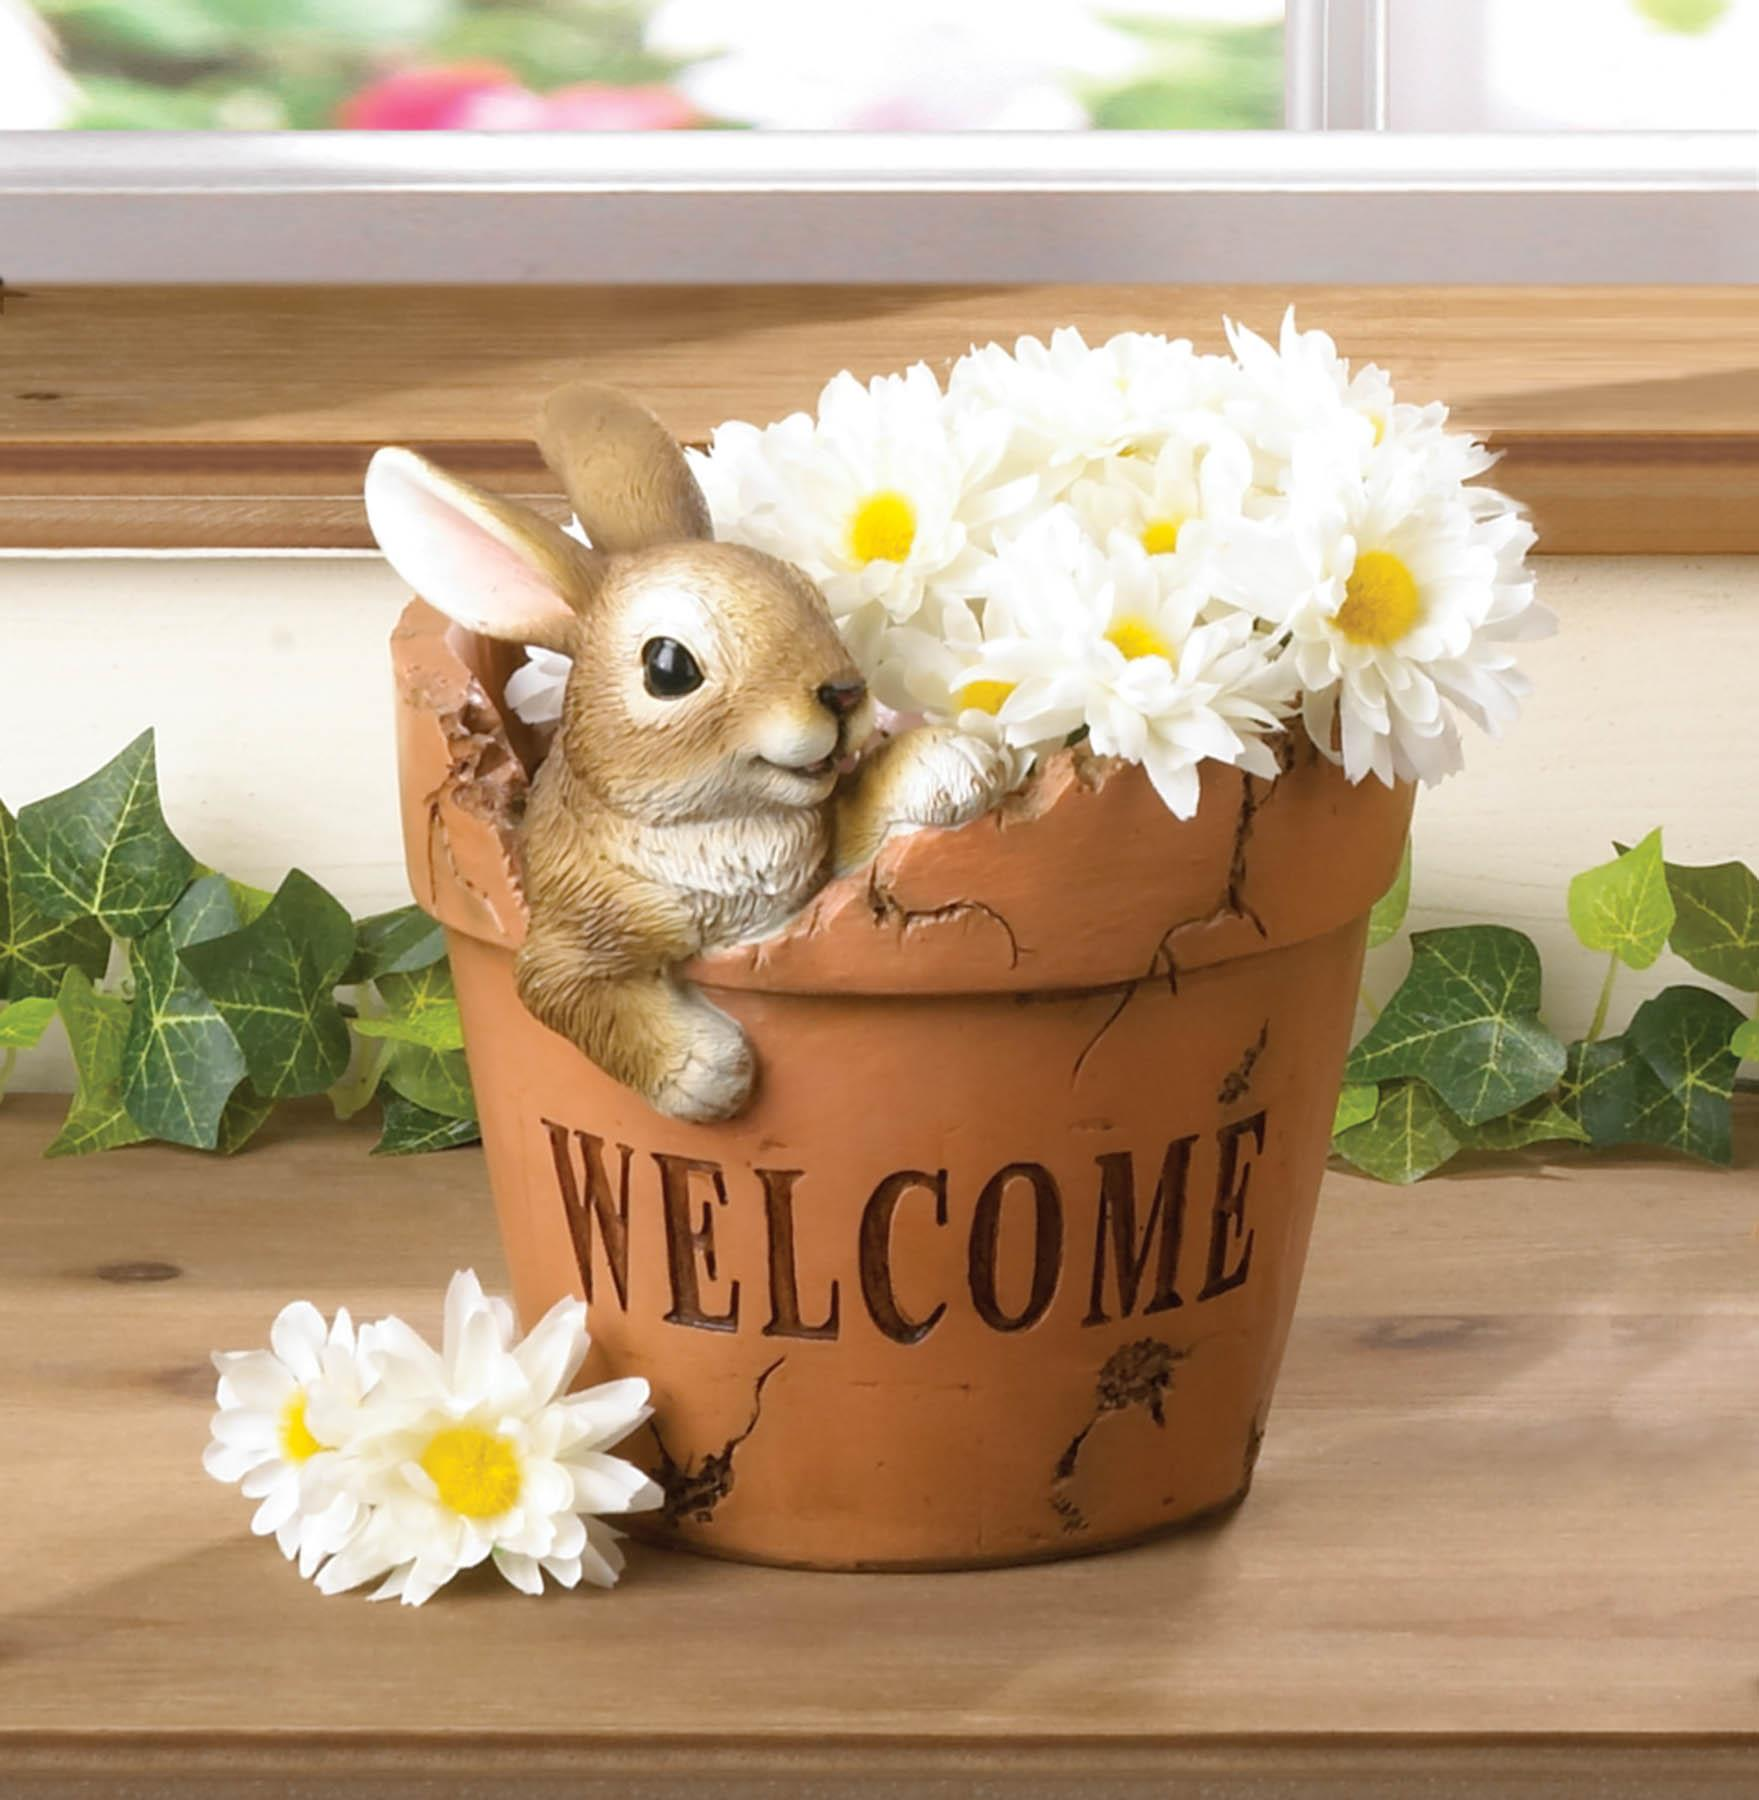 WELCOMING BUNNY PLANTER 10018694